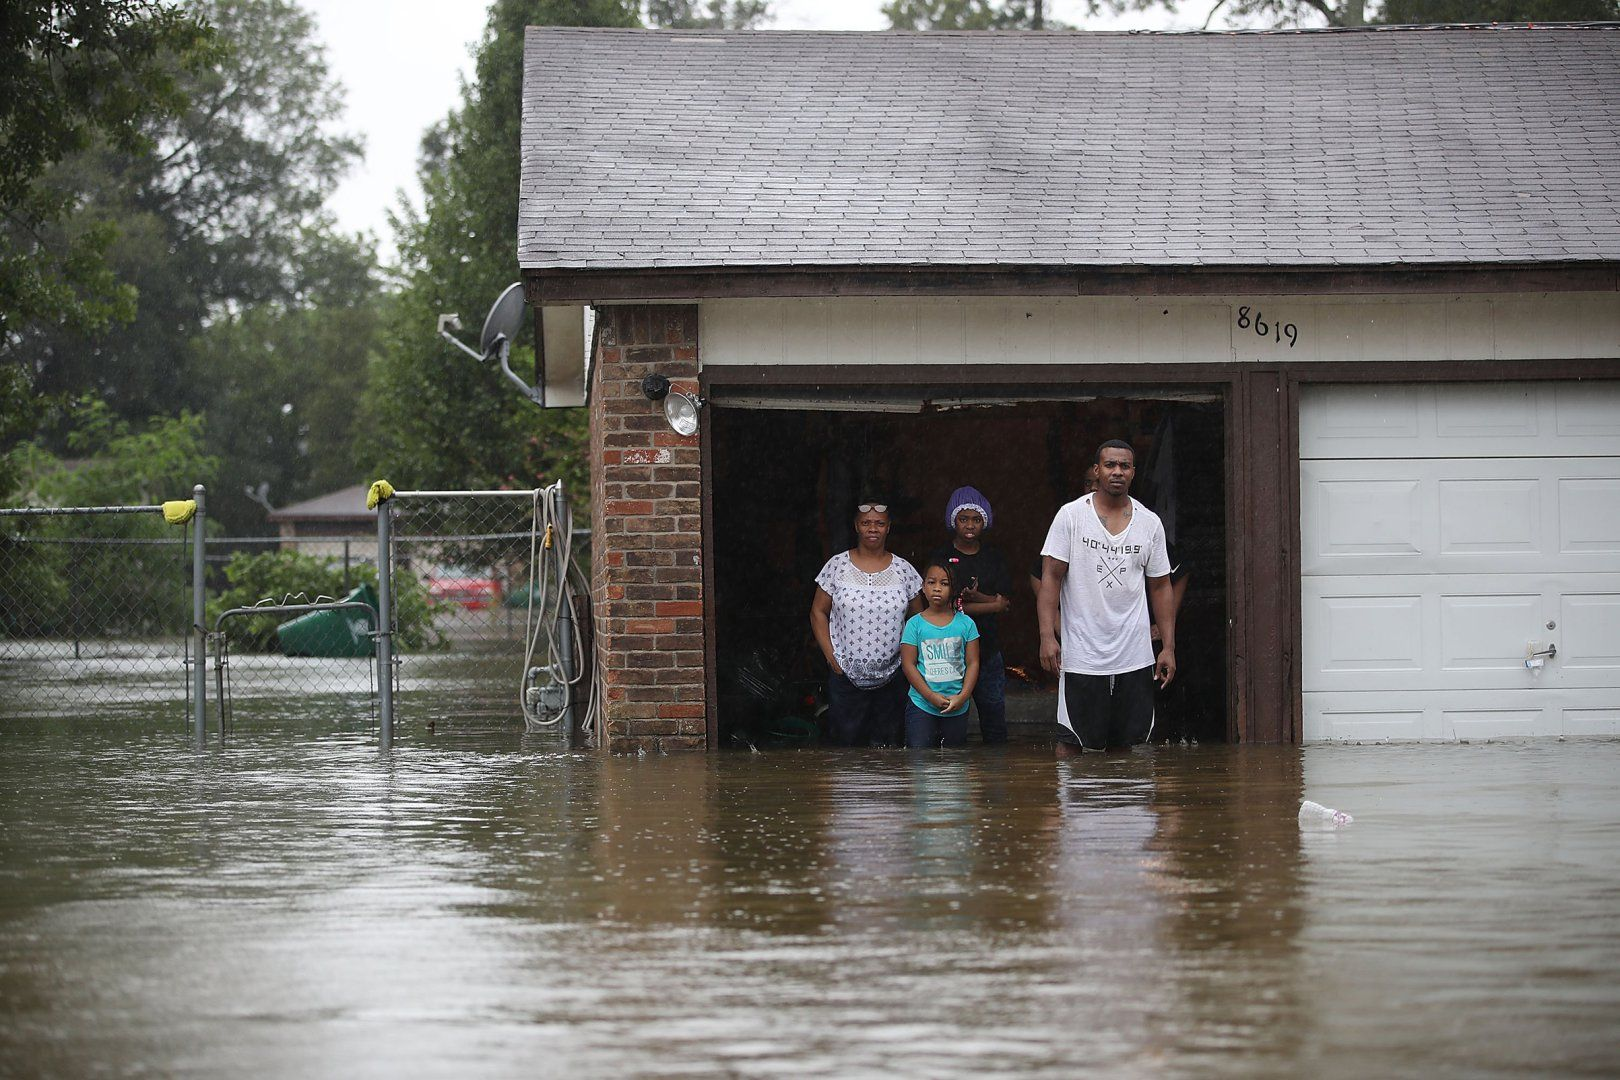 A Look At The Devastating Destruction Caused By Hurricane Harvey Flood The Weather Channel Flood Risk